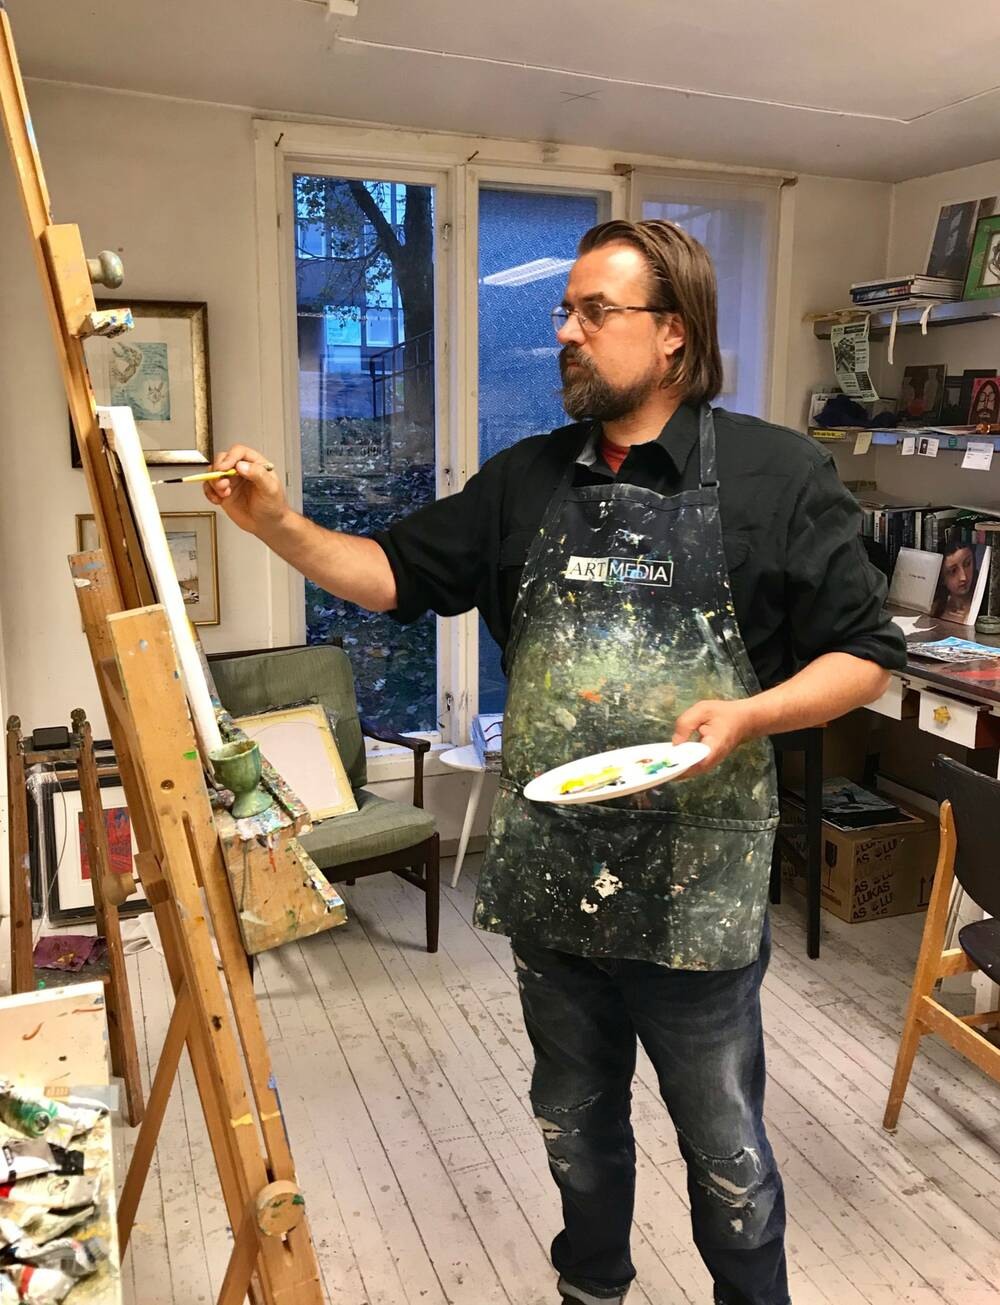 David Sandum standing at an easel, painting. He wears a paint-covered apron.